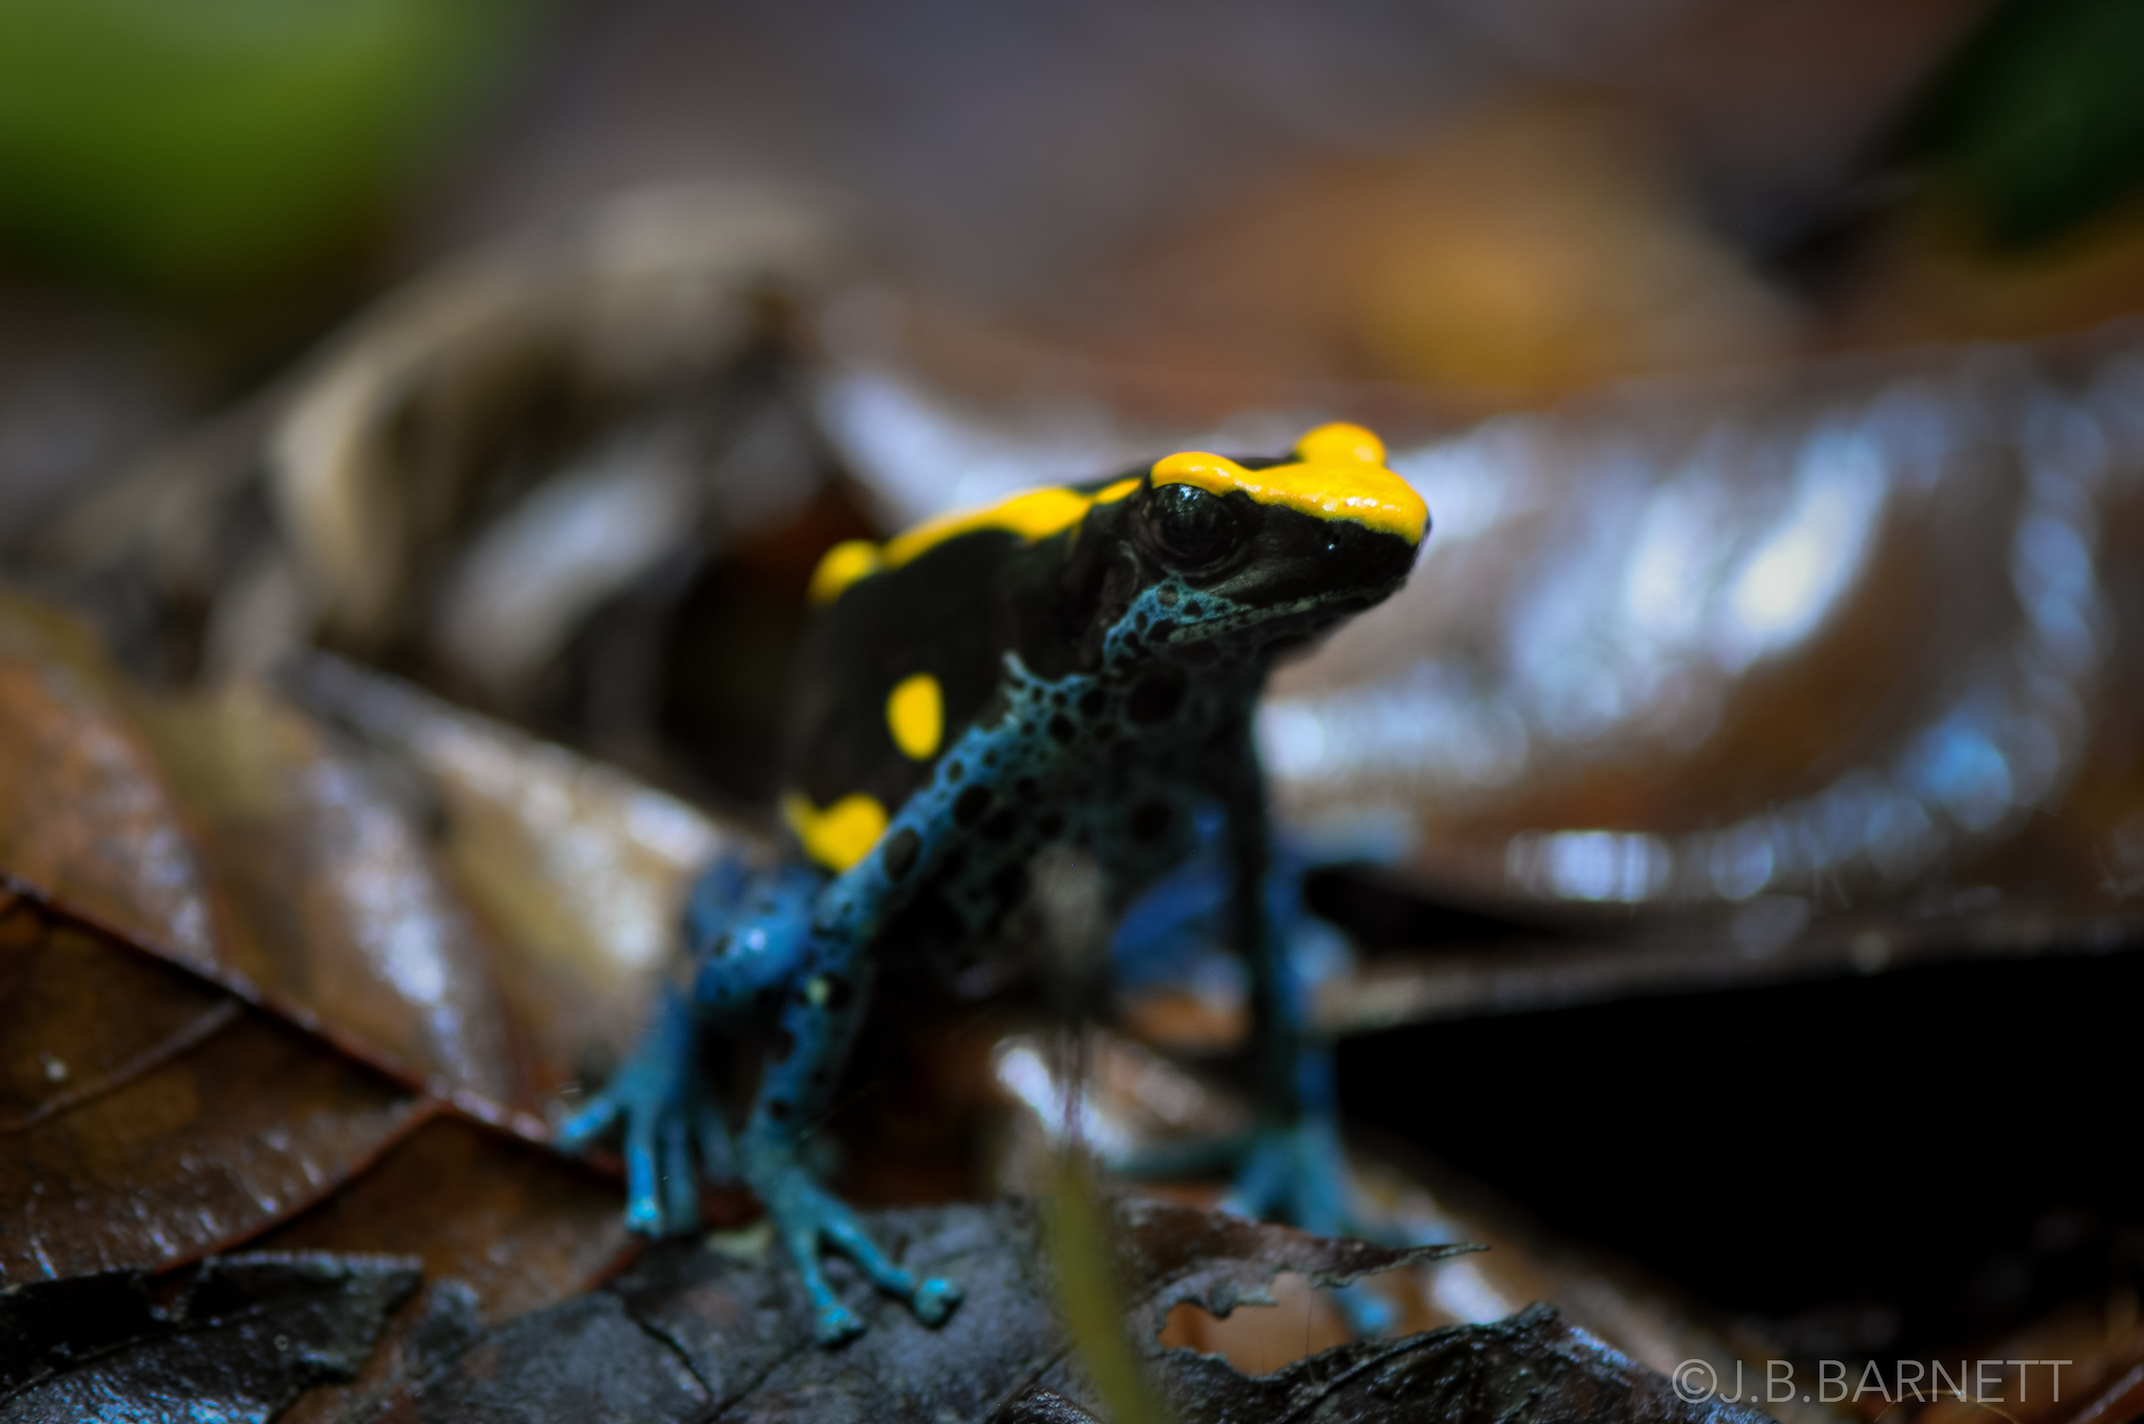 Scientists at the University of Bristol have found that the bright colors of the poison dart frog not only function as a way to ward off predators, but also serve as a second type of defense mechanism.